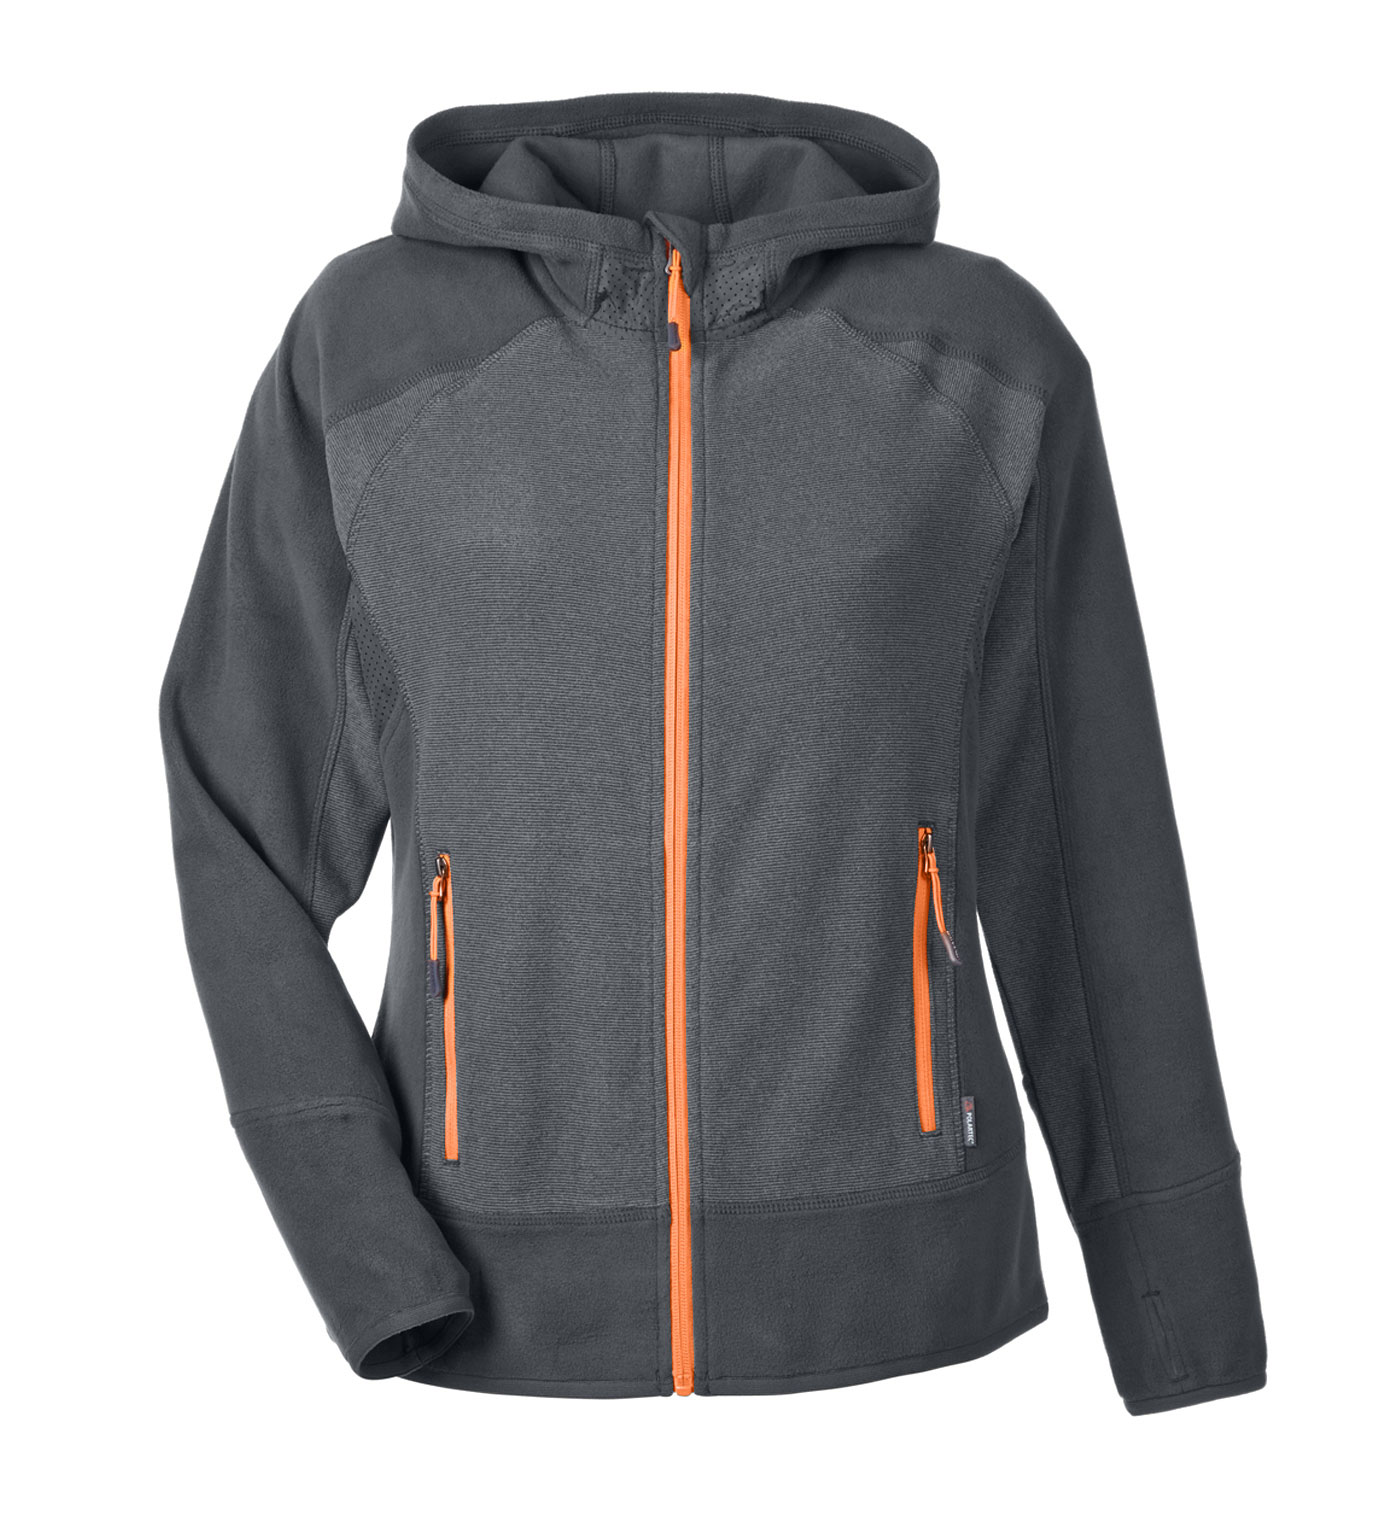 Ladies Vortek Polartec Active Fleece Jacket